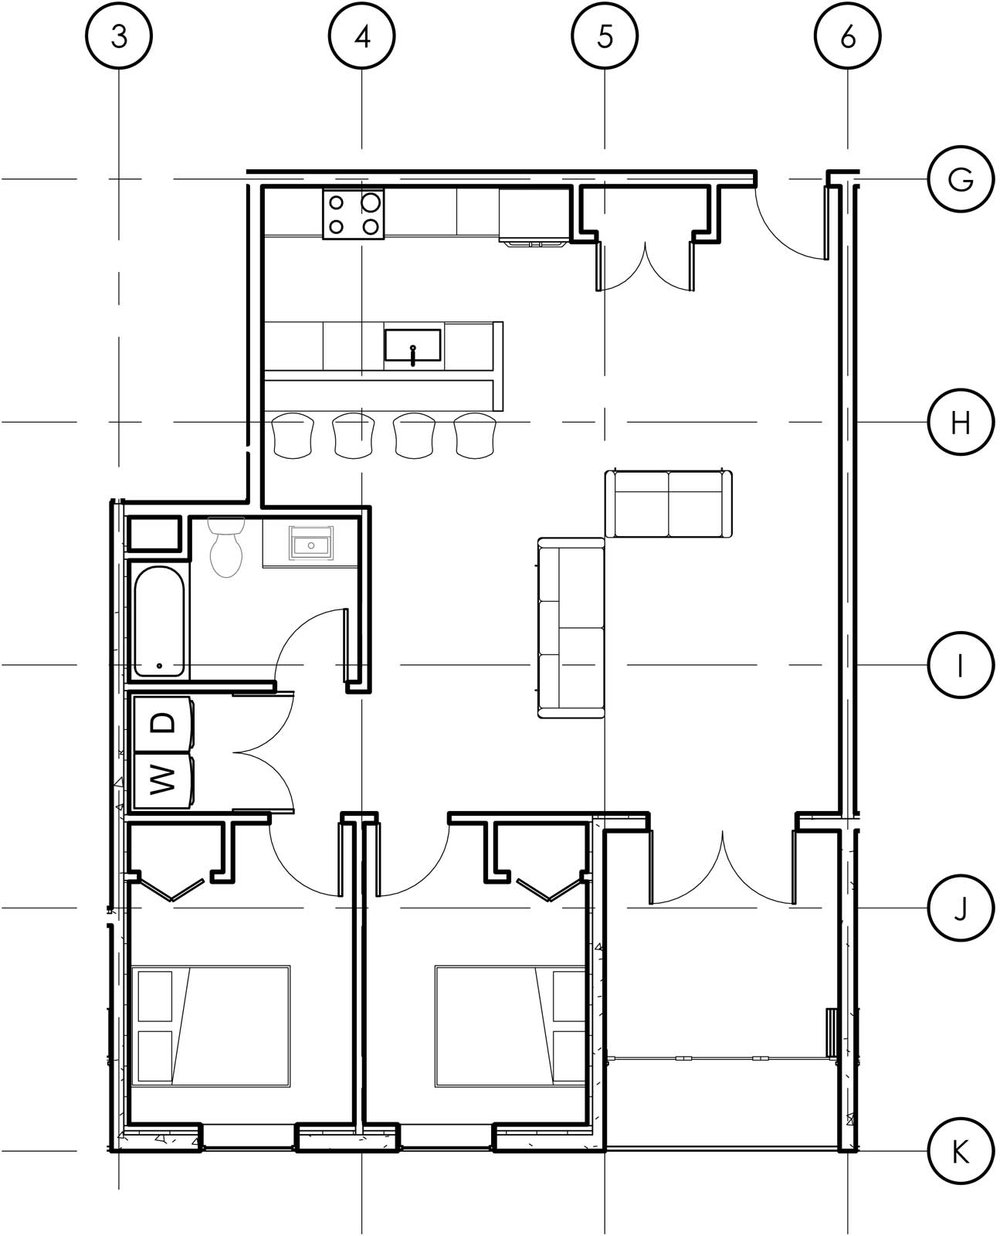 Two bedroom apartments on odd numbered floors